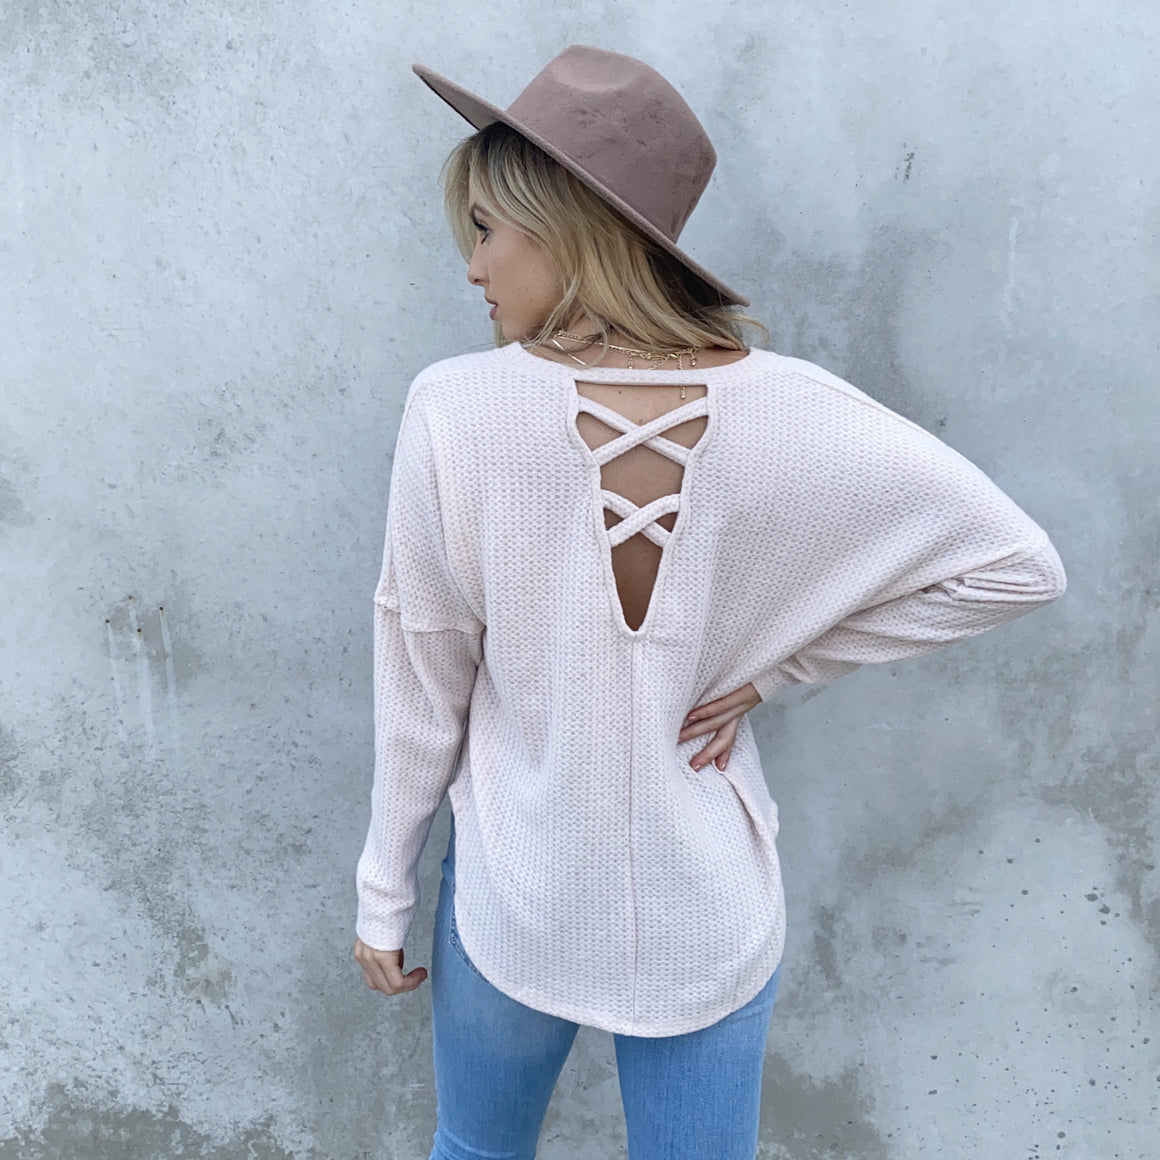 Better Together Cream Knit Open Back Sweater Top - Dainty Hooligan